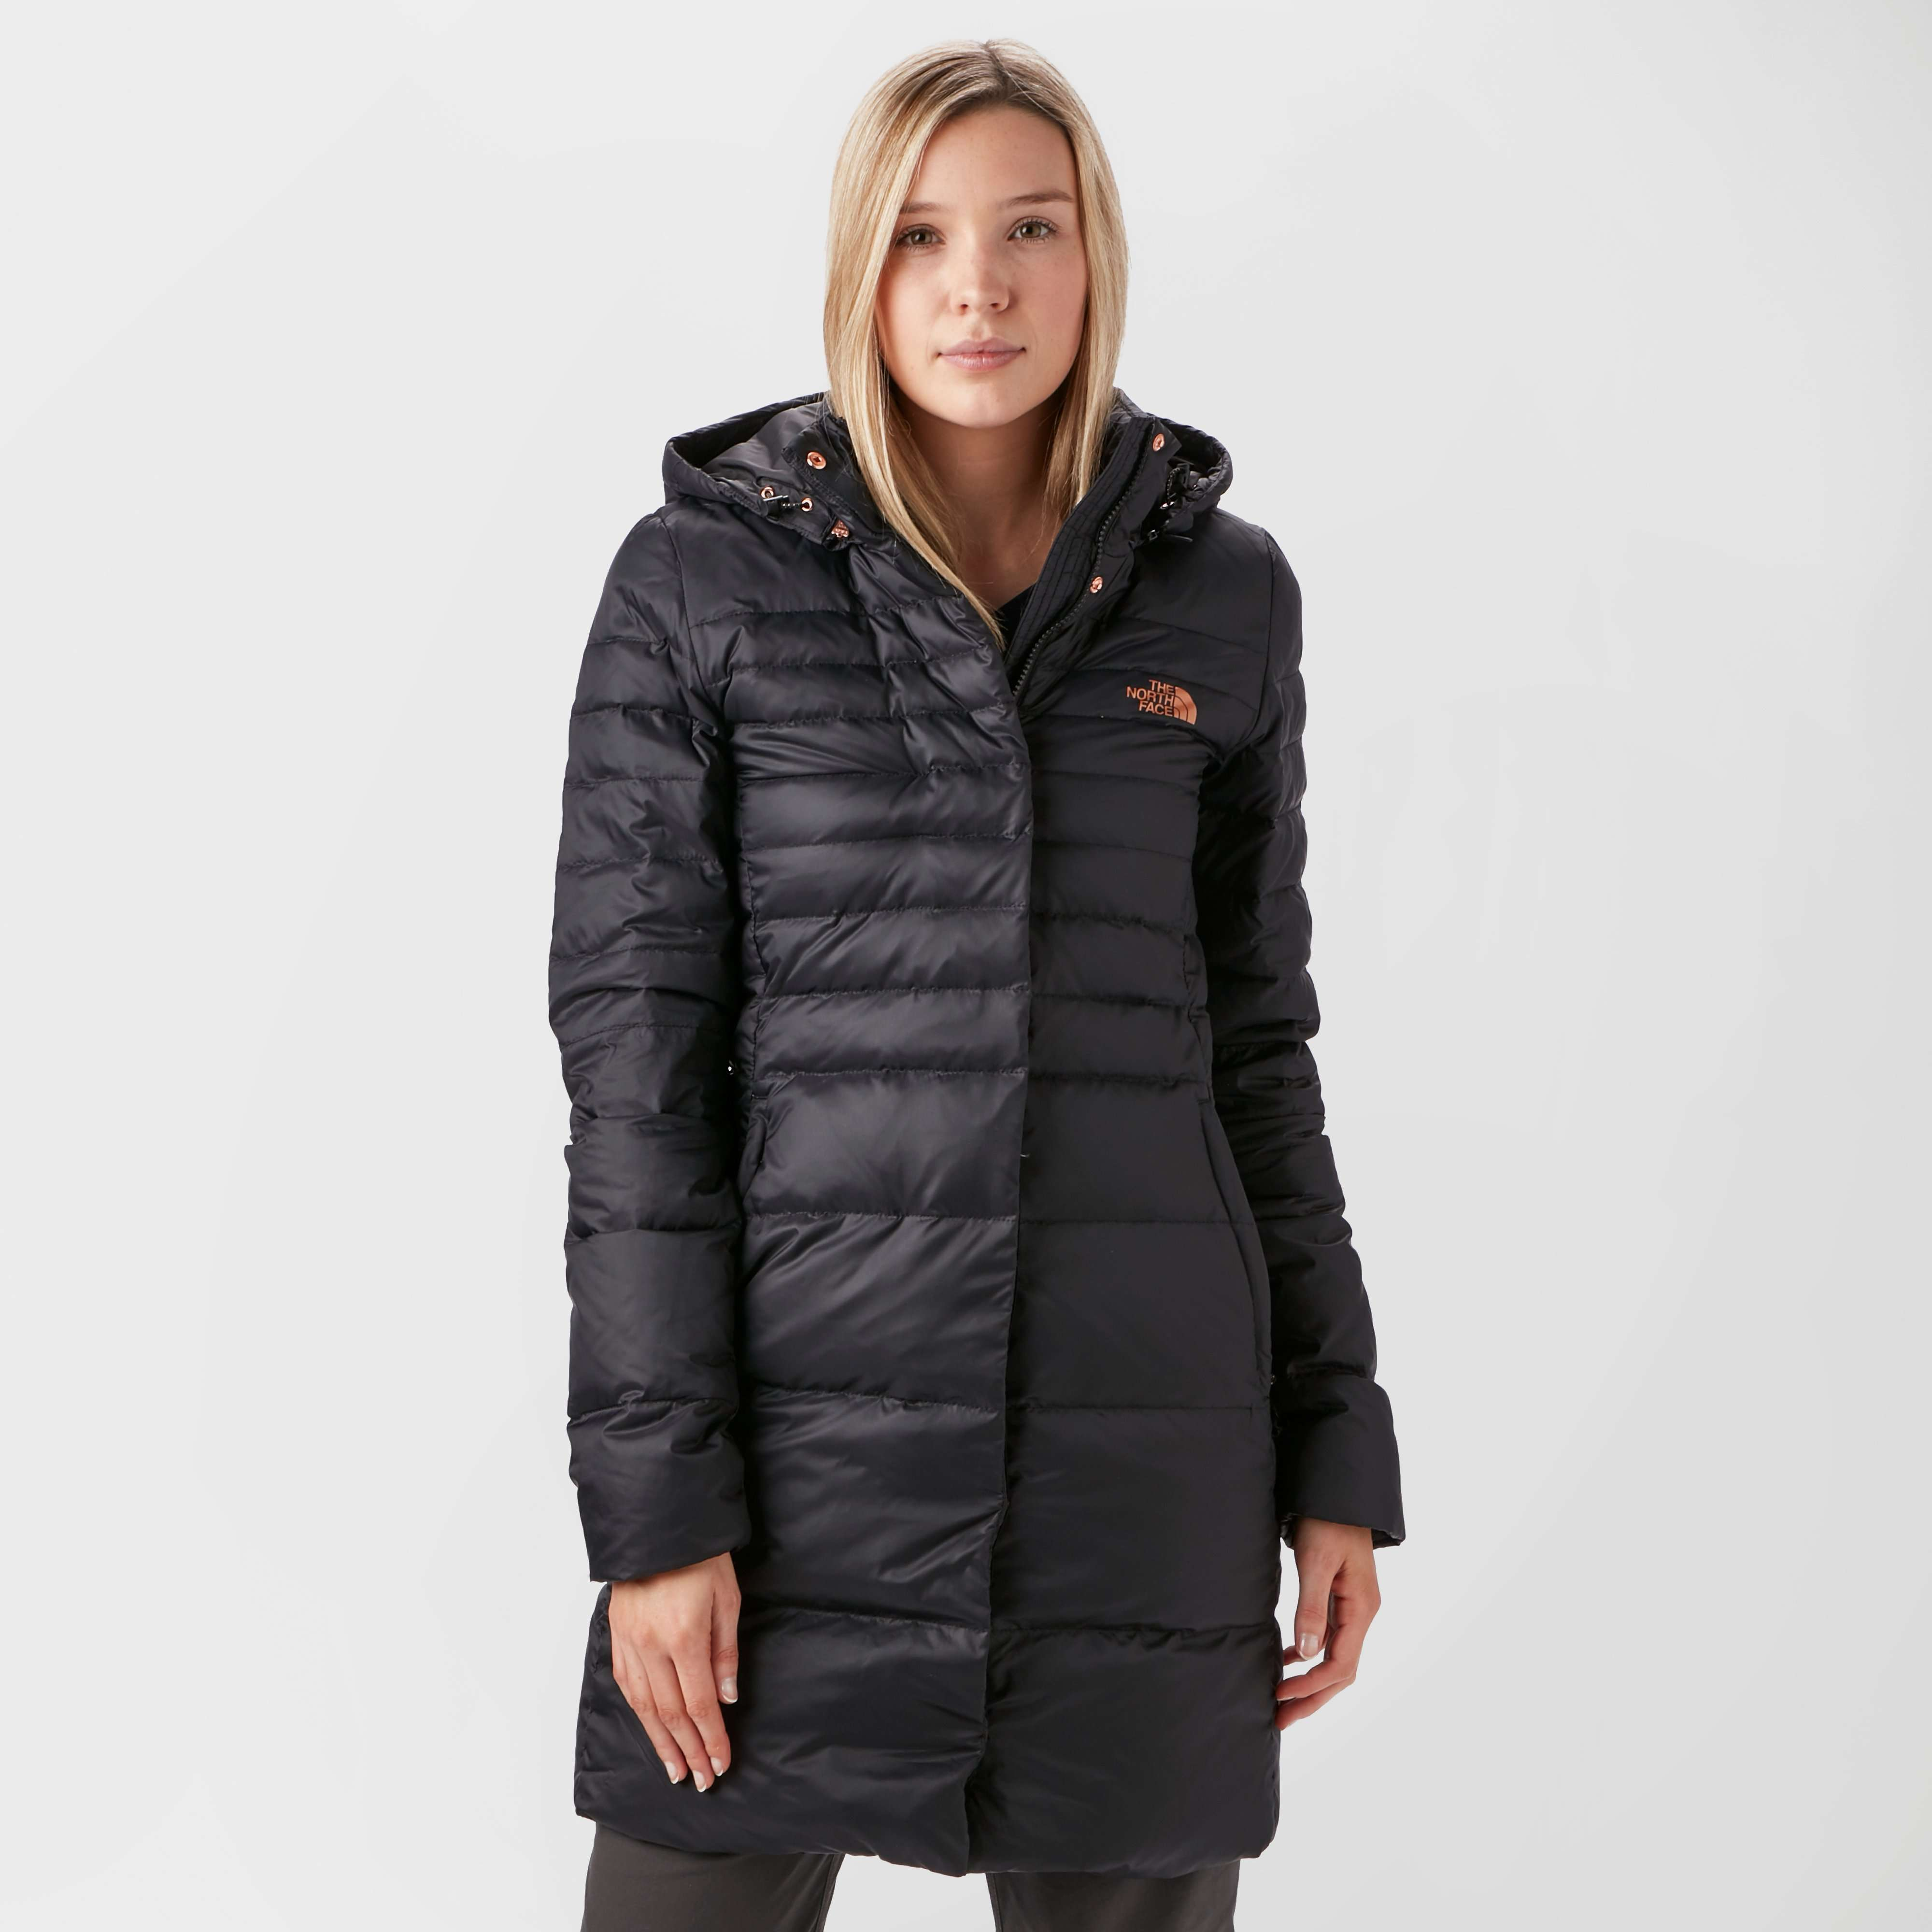 THE NORTH FACE Women's Kings Canyon Parka